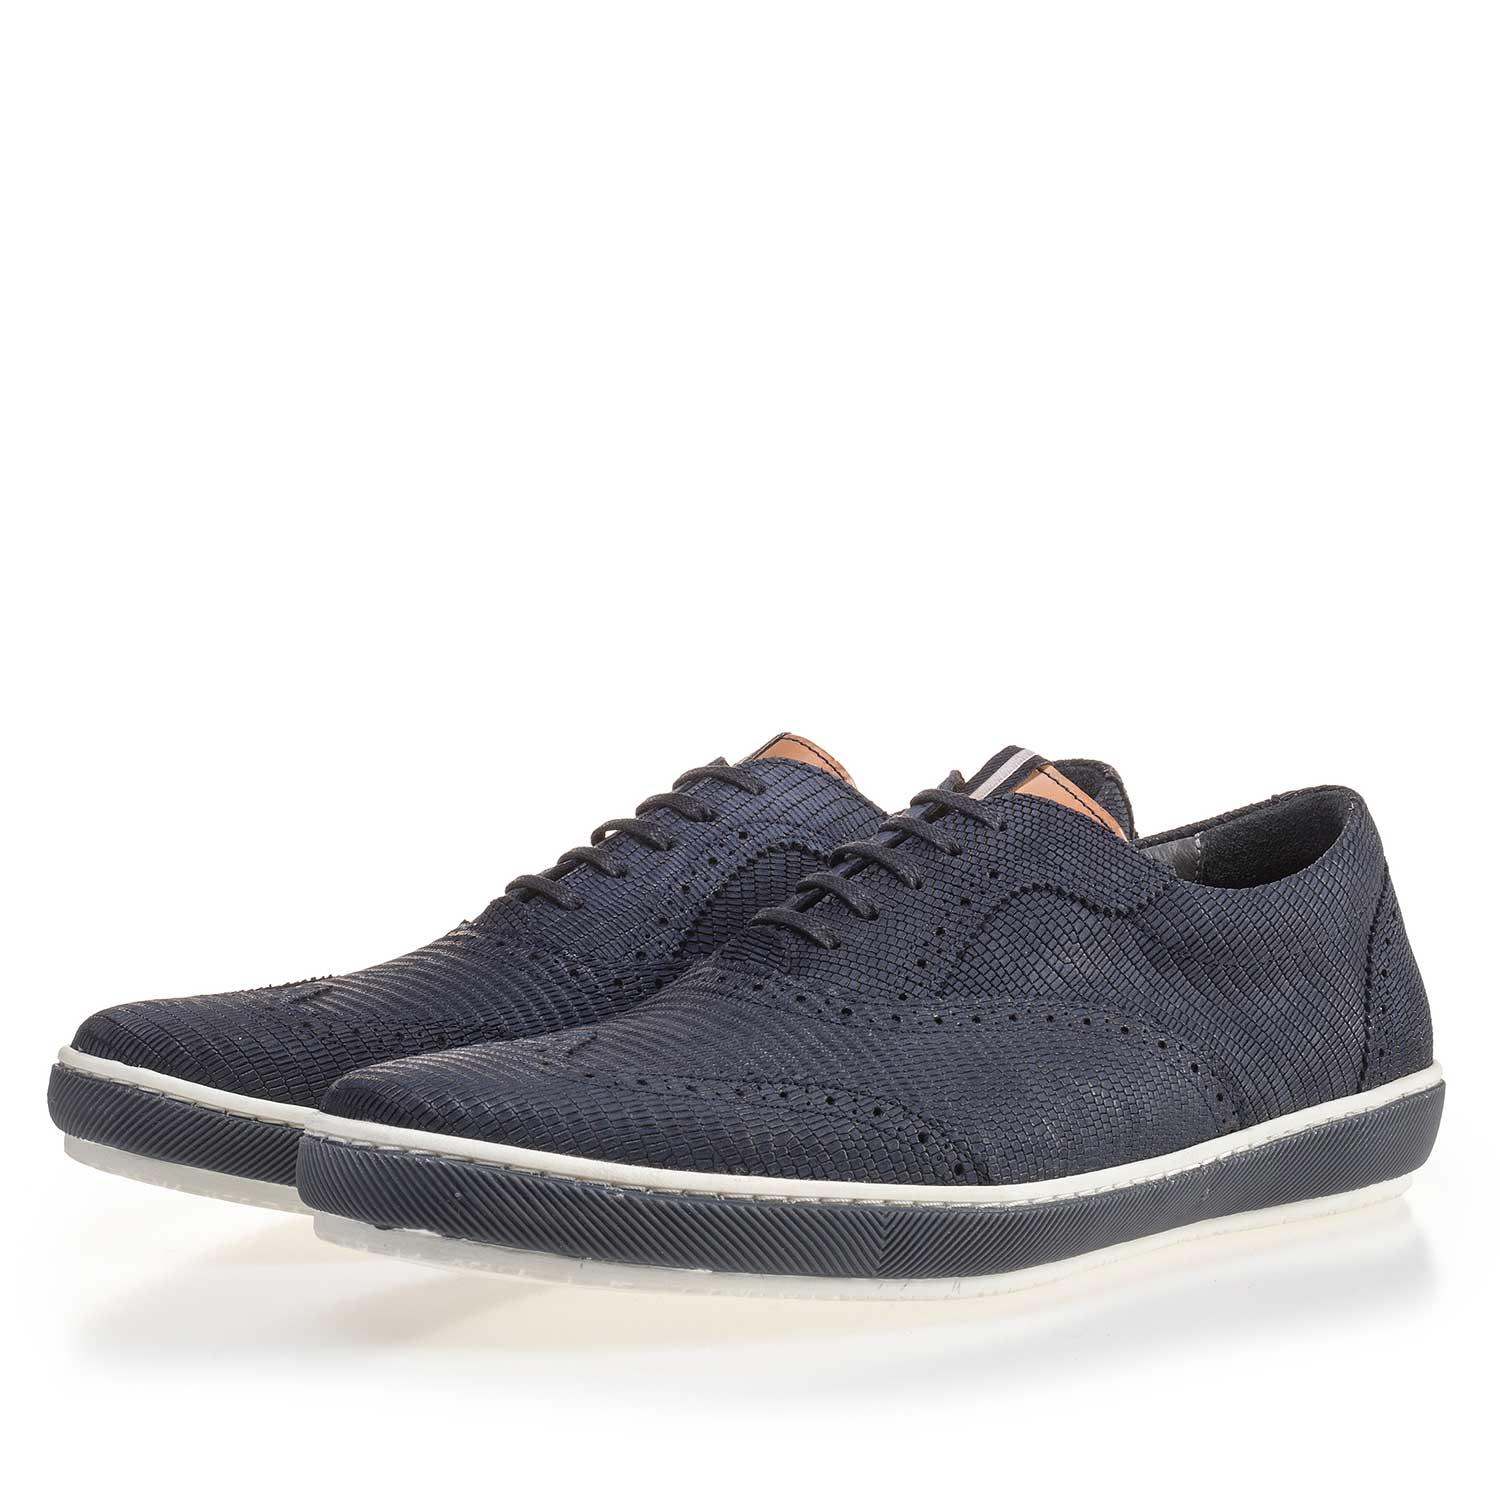 19036/34 - Blue brogue nubuck leather sneaker